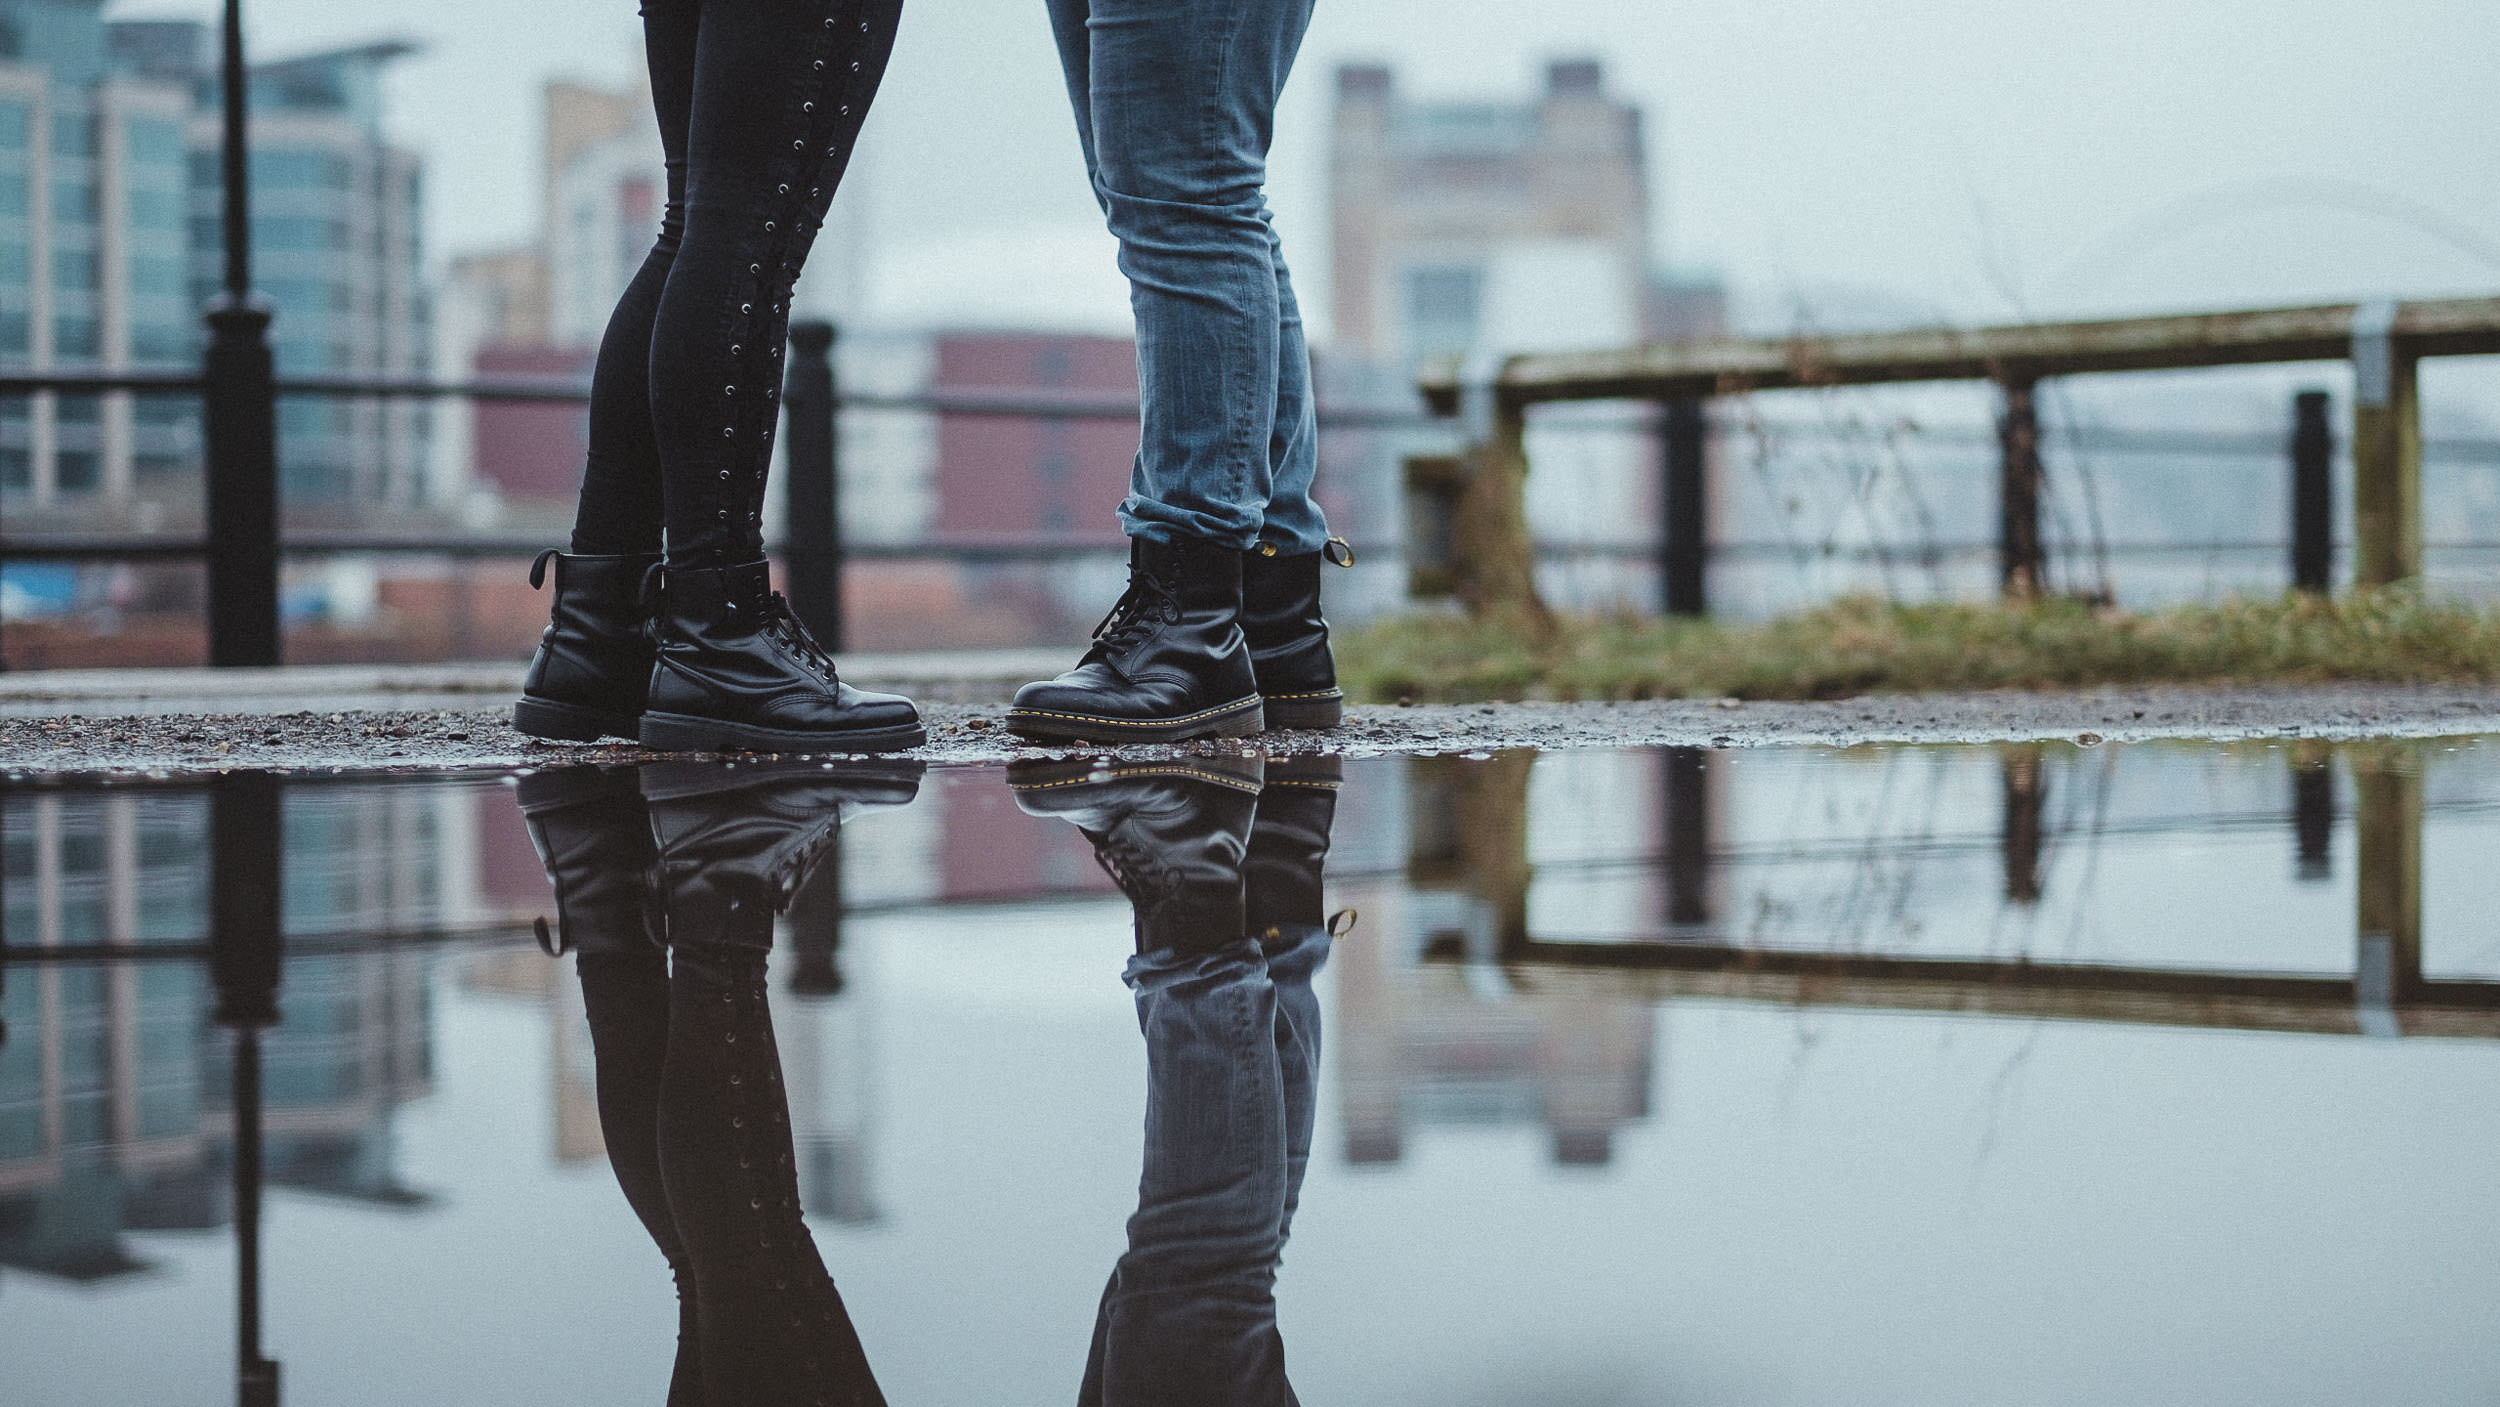 Close up of couples wearing Doc Martin boots reflected in puddle with Baltic Gateshead in background